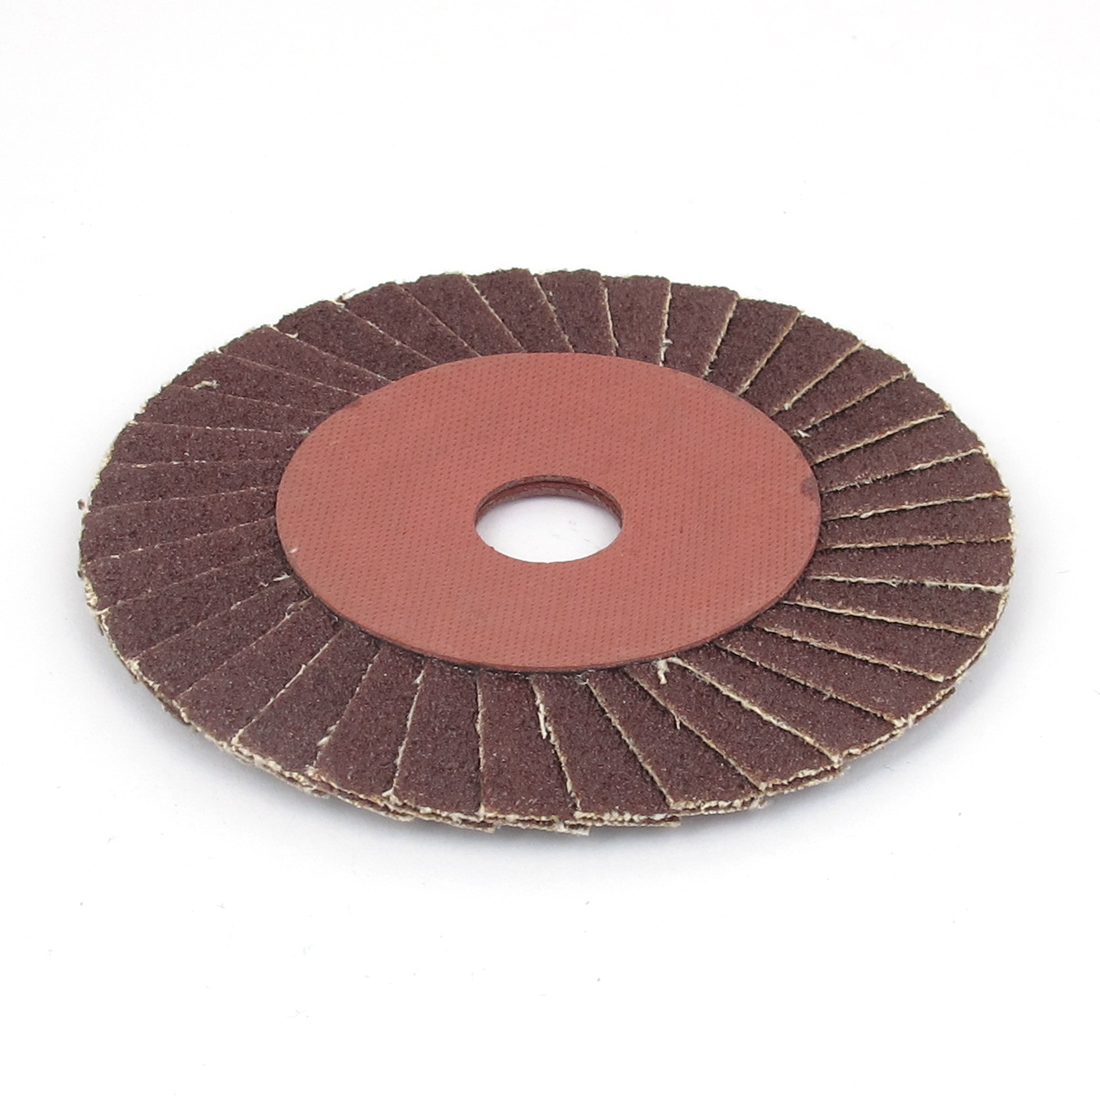 100mm Dia Abrasive Flap Sanding Disc Grinding Wheel